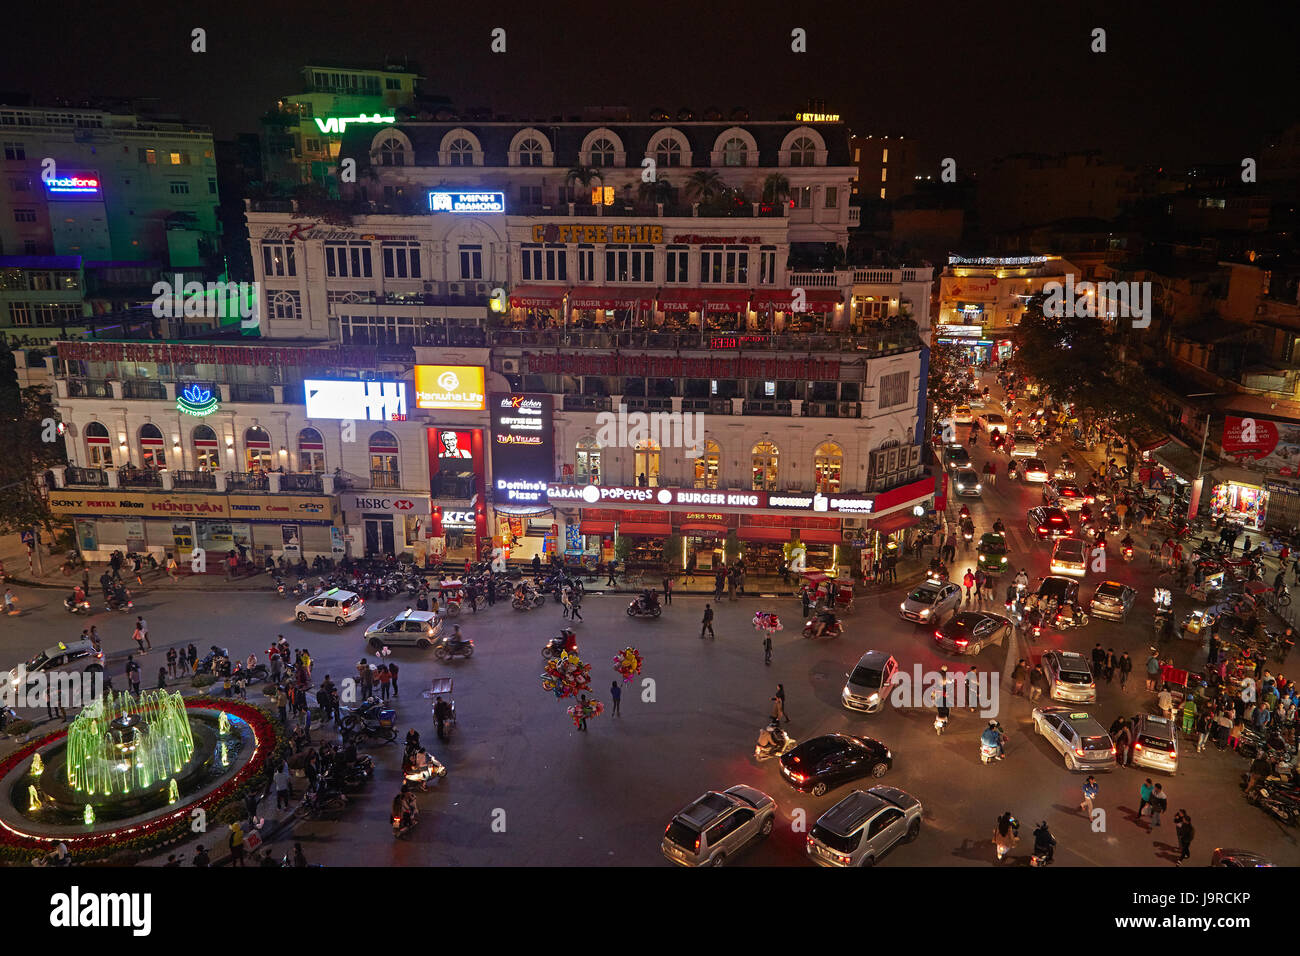 Crazy traffic at night at busy intersection by Hoan Kiem Lake and Old Quarter, Hanoi, Vietnam - Stock Image